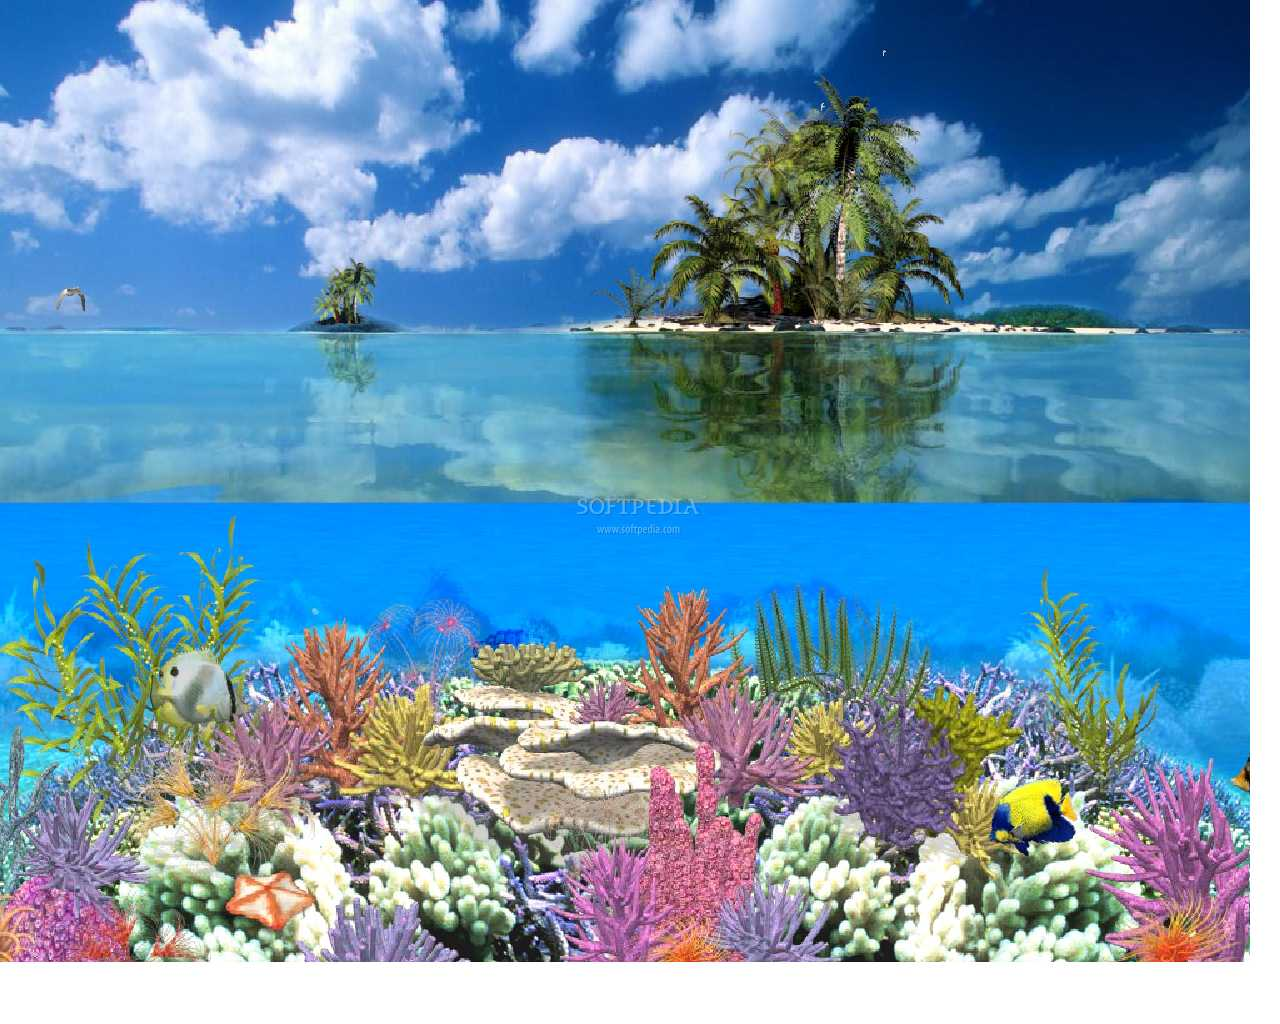 Coral Island   Animated Wallpaper   This is the image displayed by 1280x1024